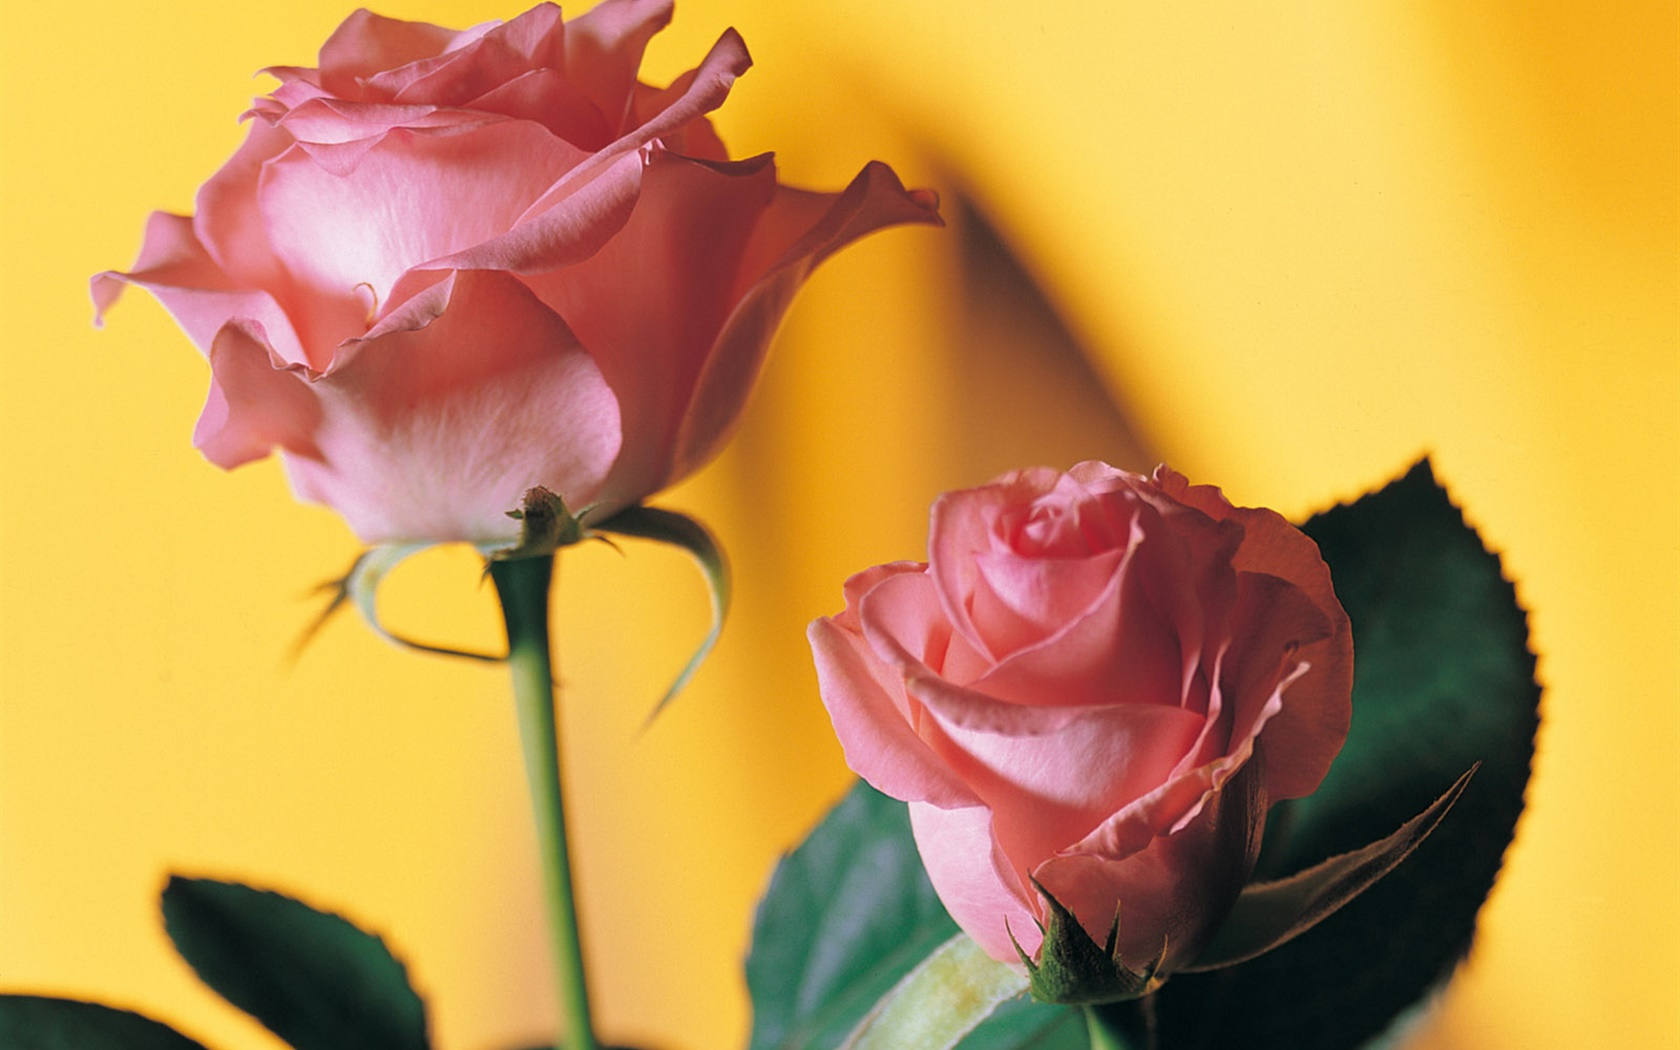 Pink rose, yellow background 1680x1050 wallpaper